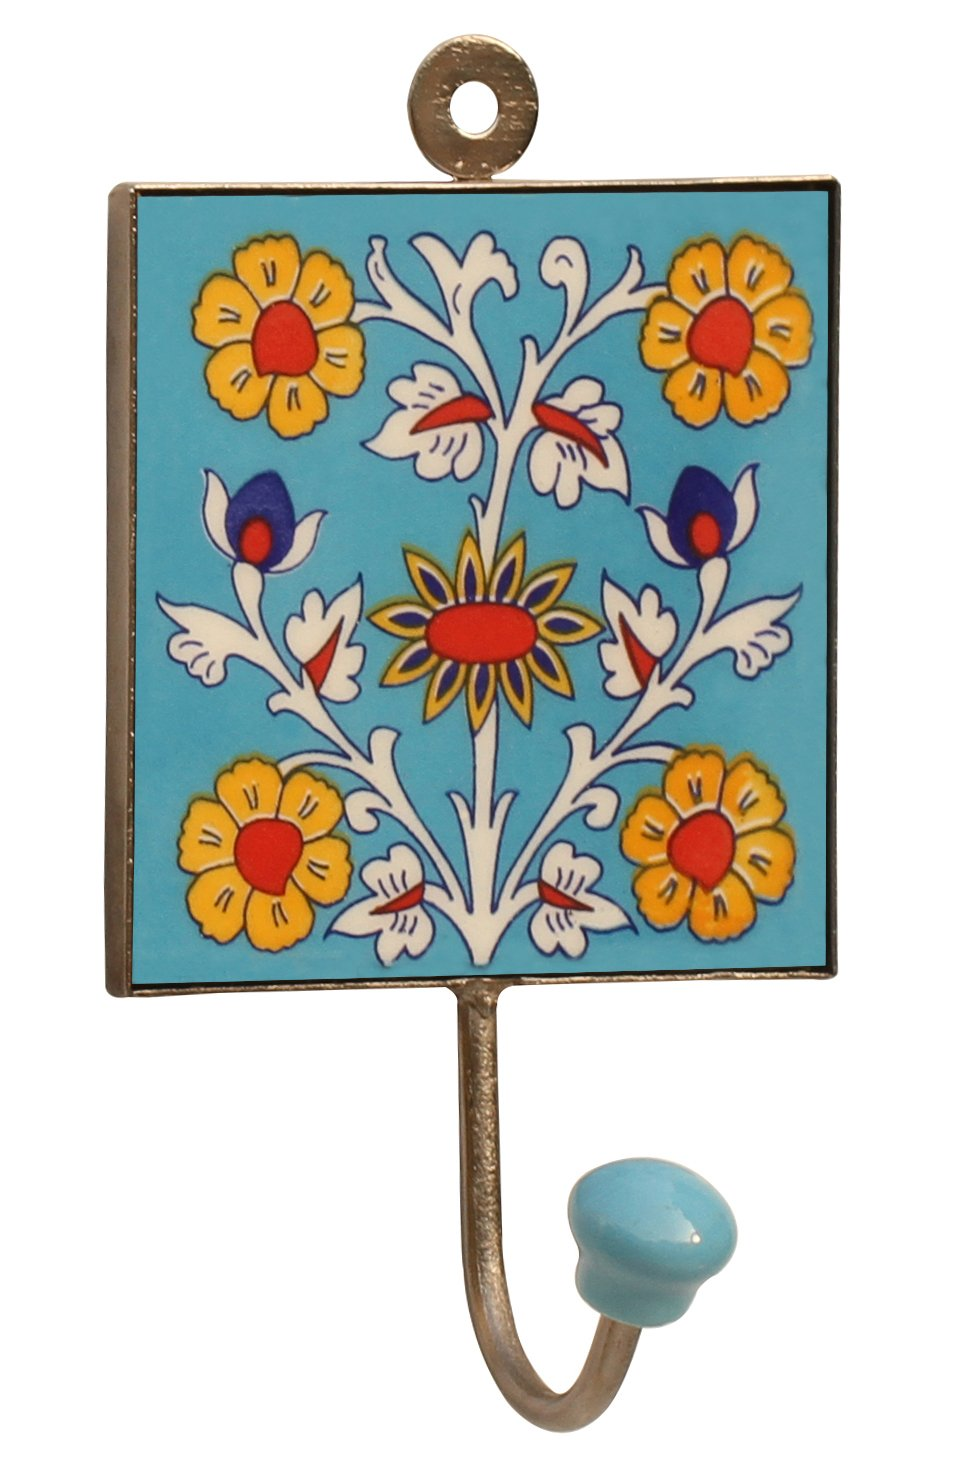 SouvNear Handmade 6'' Square Ceramic Iron Wall-Hook with Flower Design - An Artistic Way to Hang Clothes / Umbrellas / Bags / Hats / Belts / Wall Décor Accessories